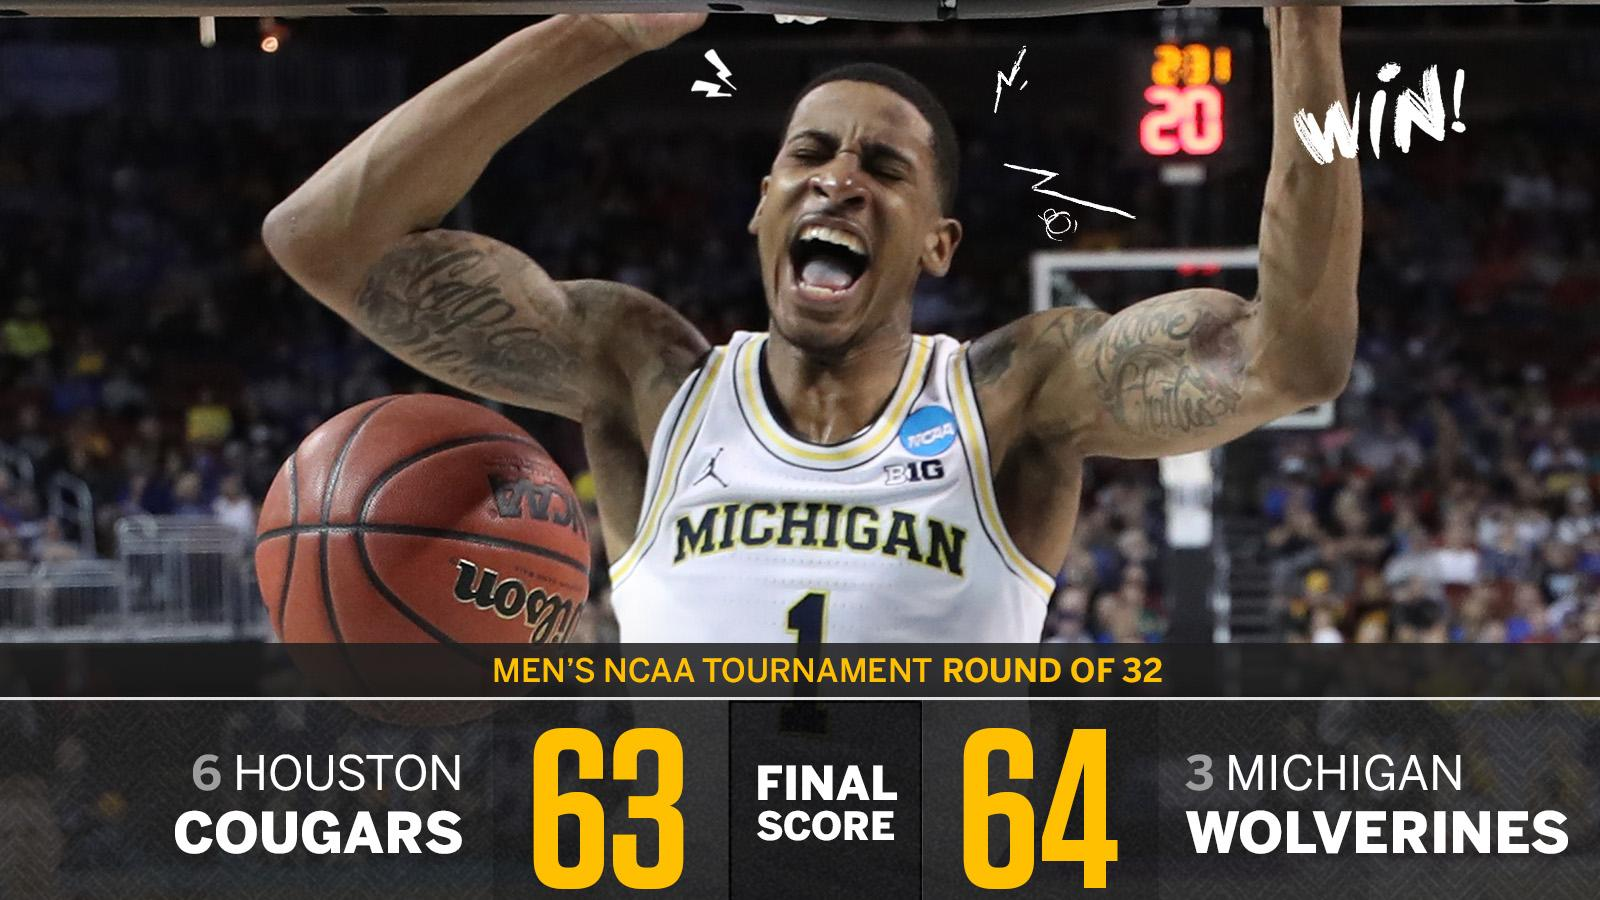 Michigan moves on!   The Wolverines make the Sweet 16 for the 4th time in their last 5 tourney appearances. https://t.co/U47Otvf2L3